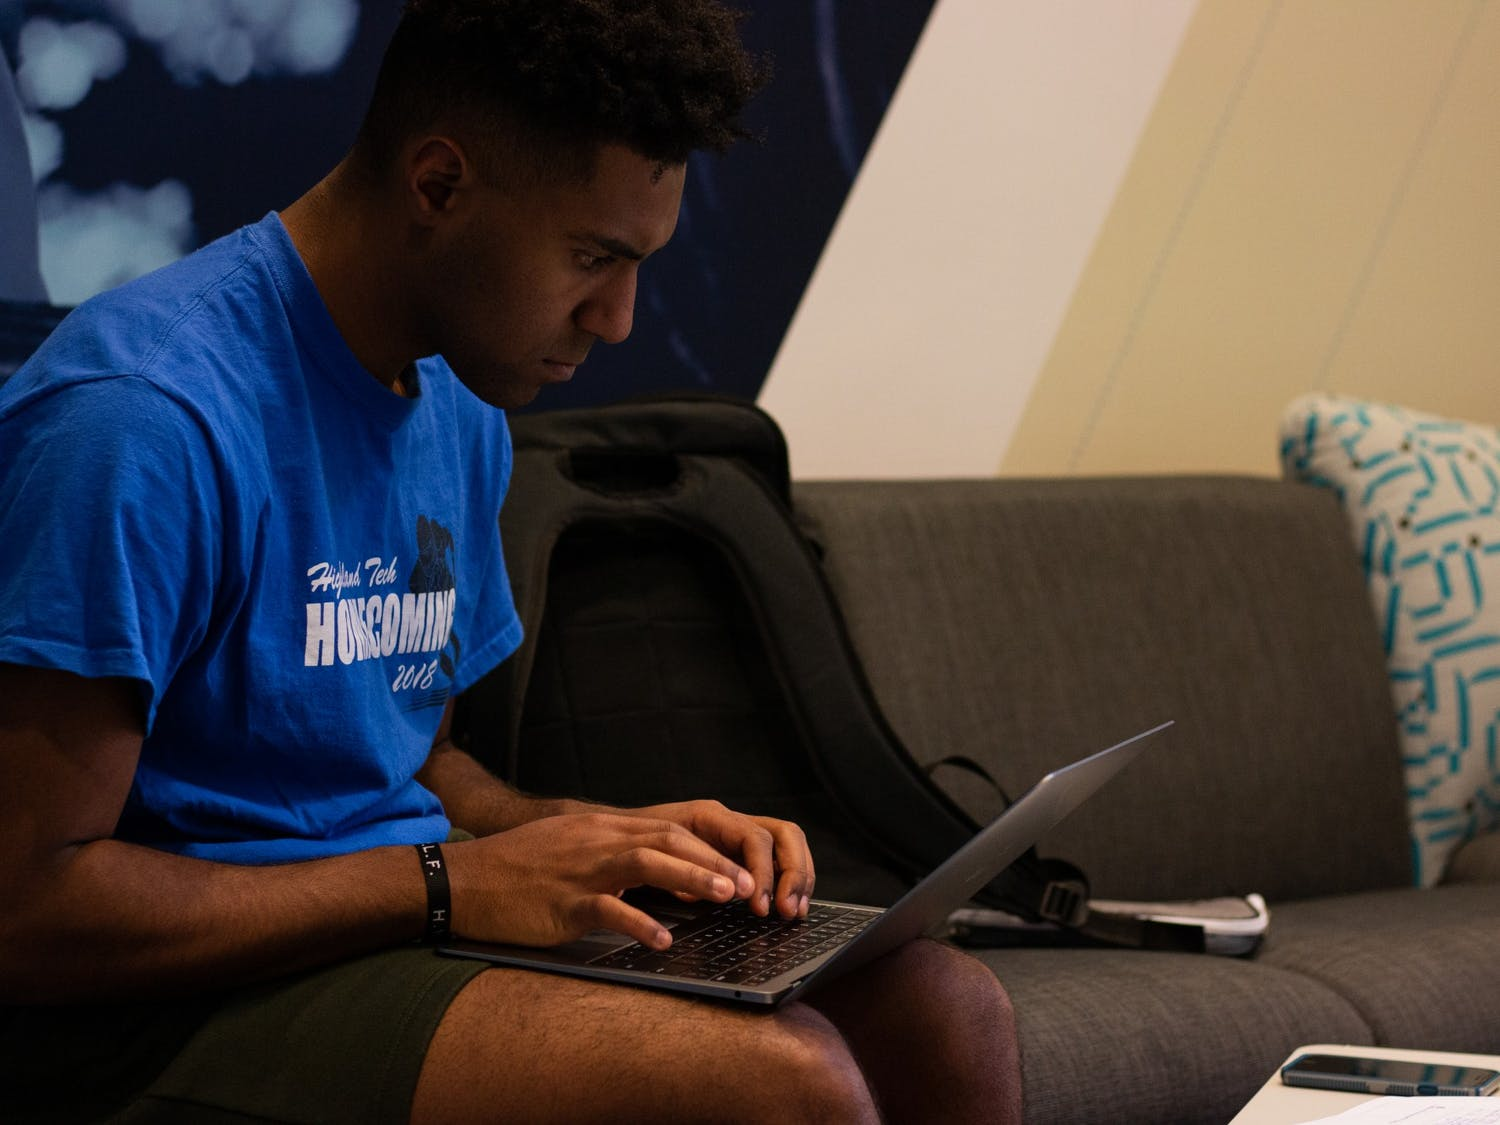 Jovan Sheshbaradaran, a first-year studying business and political science, studies for an upcoming statistics exam in a lounge in Koury residence hall on Nov. 24, 2019.